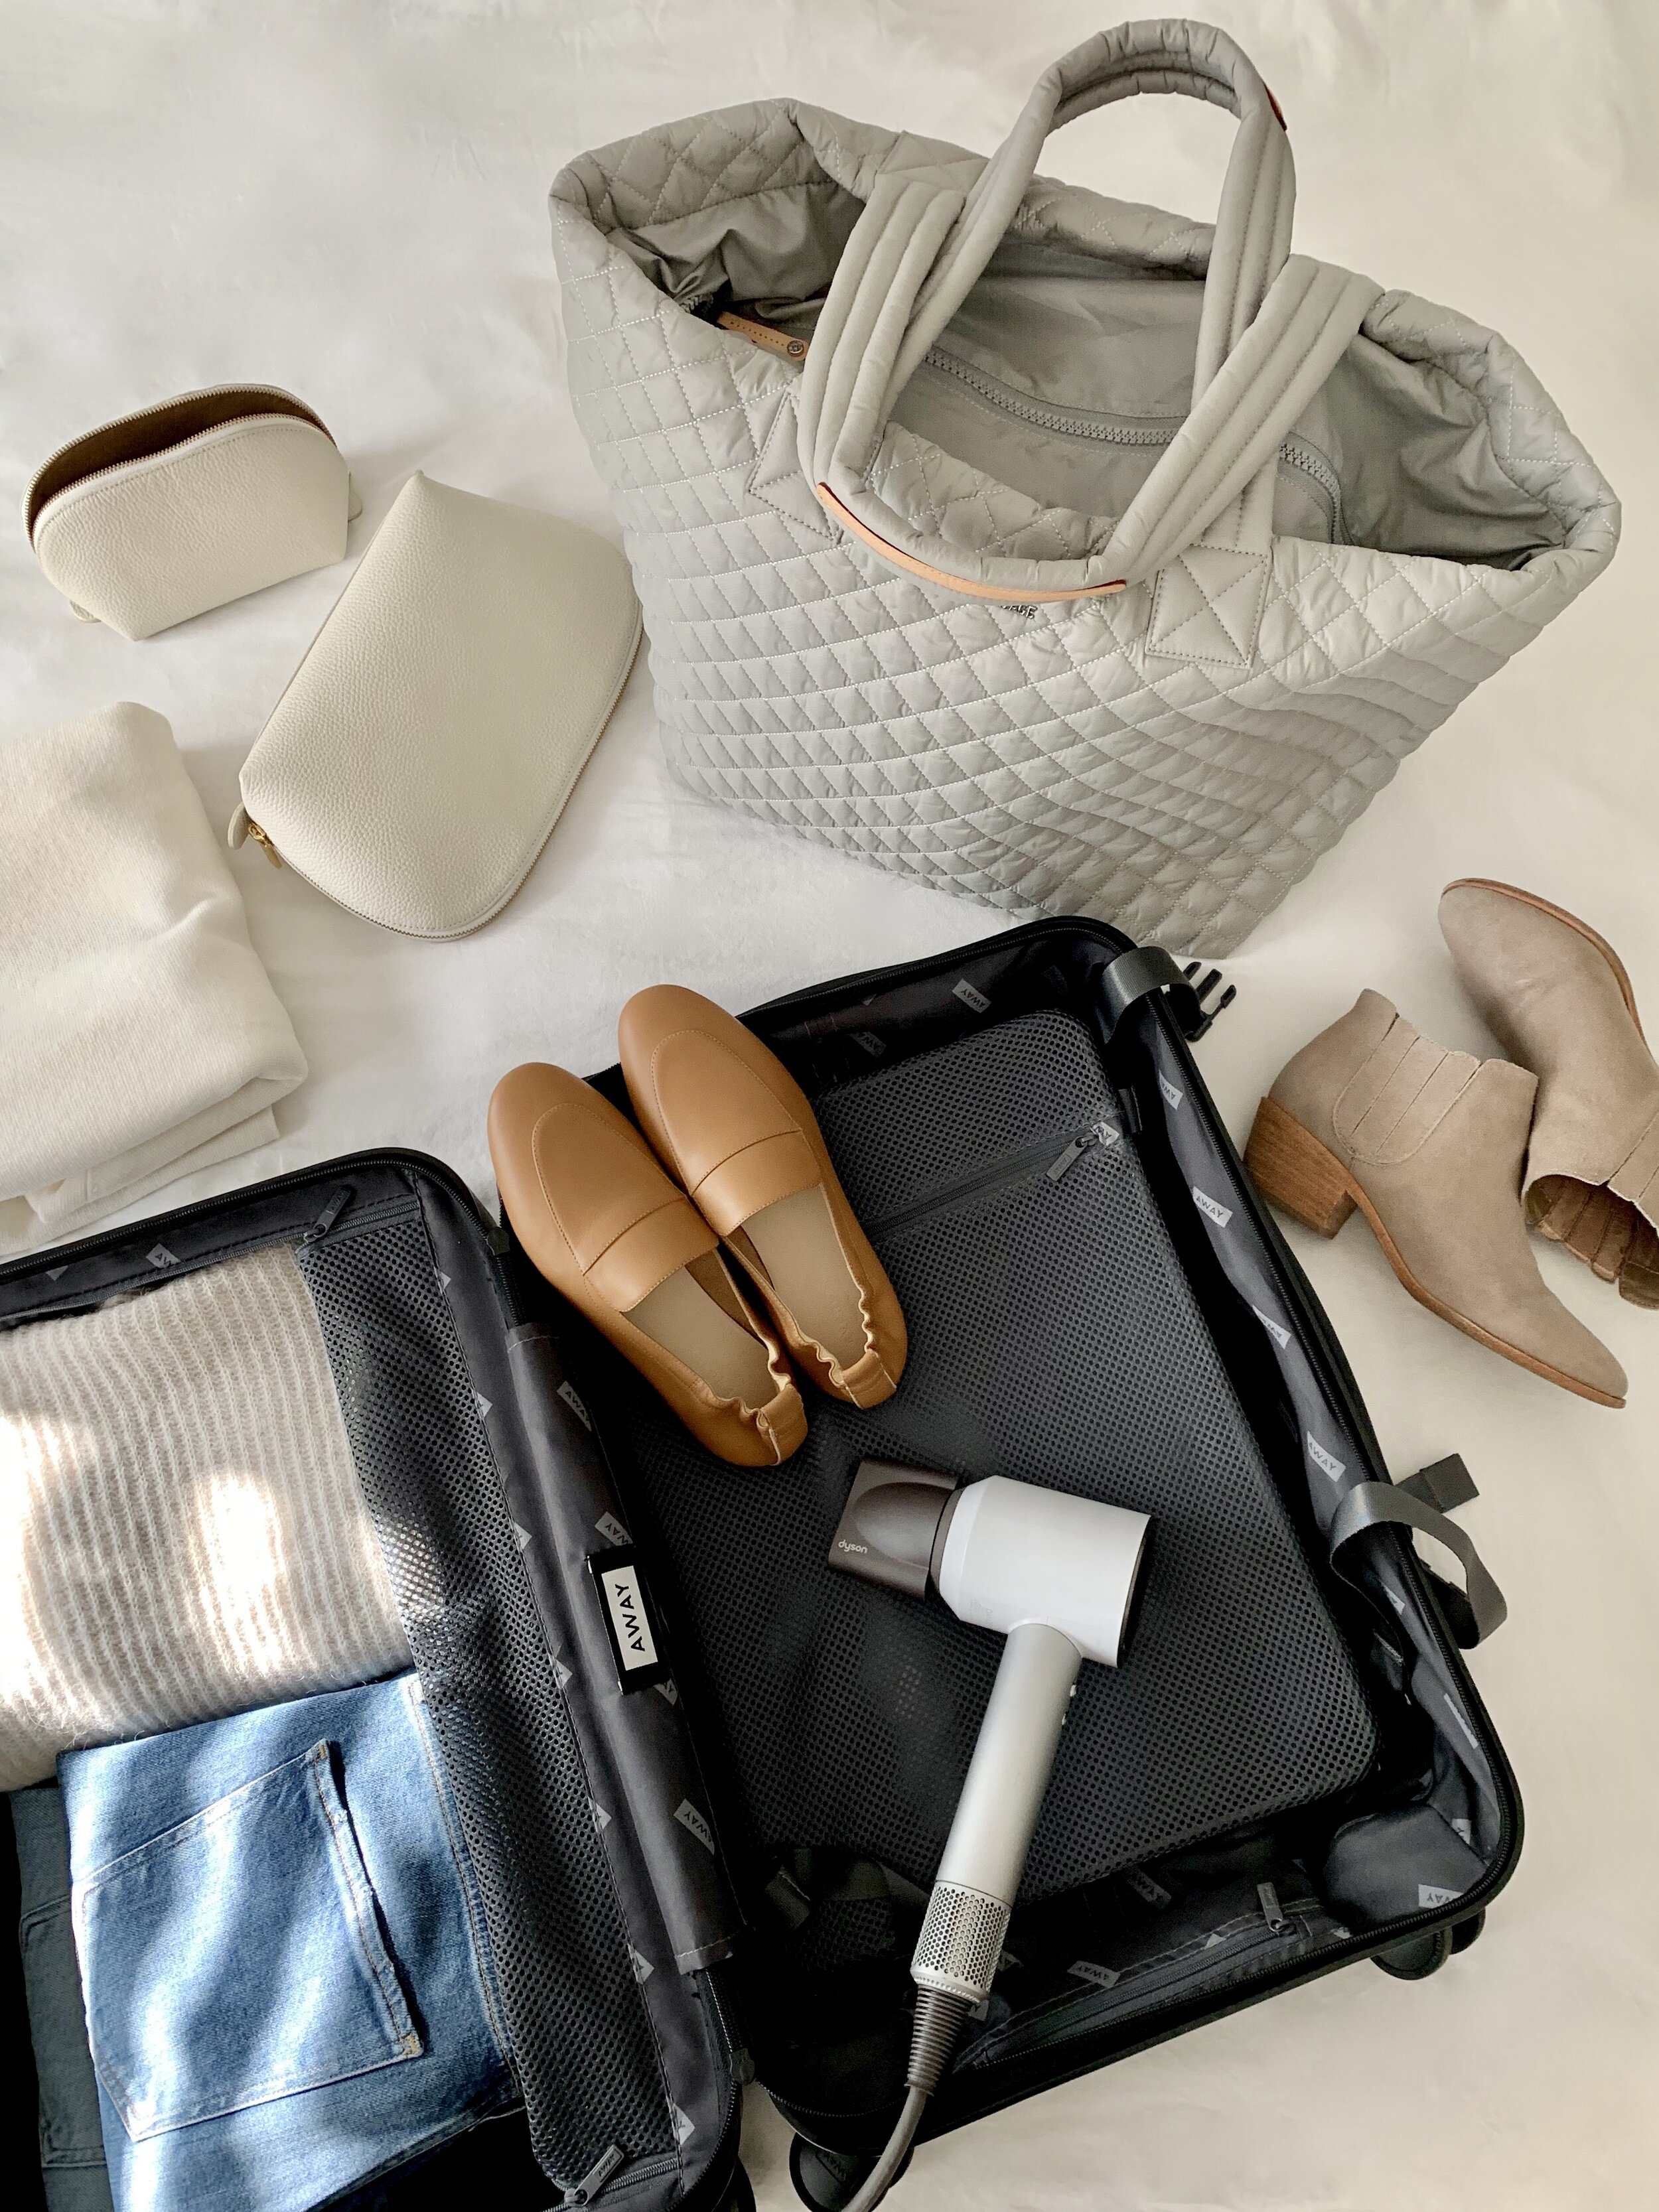 EVERYTHING IN PLACE - A few travel essentials to keep everything organized.